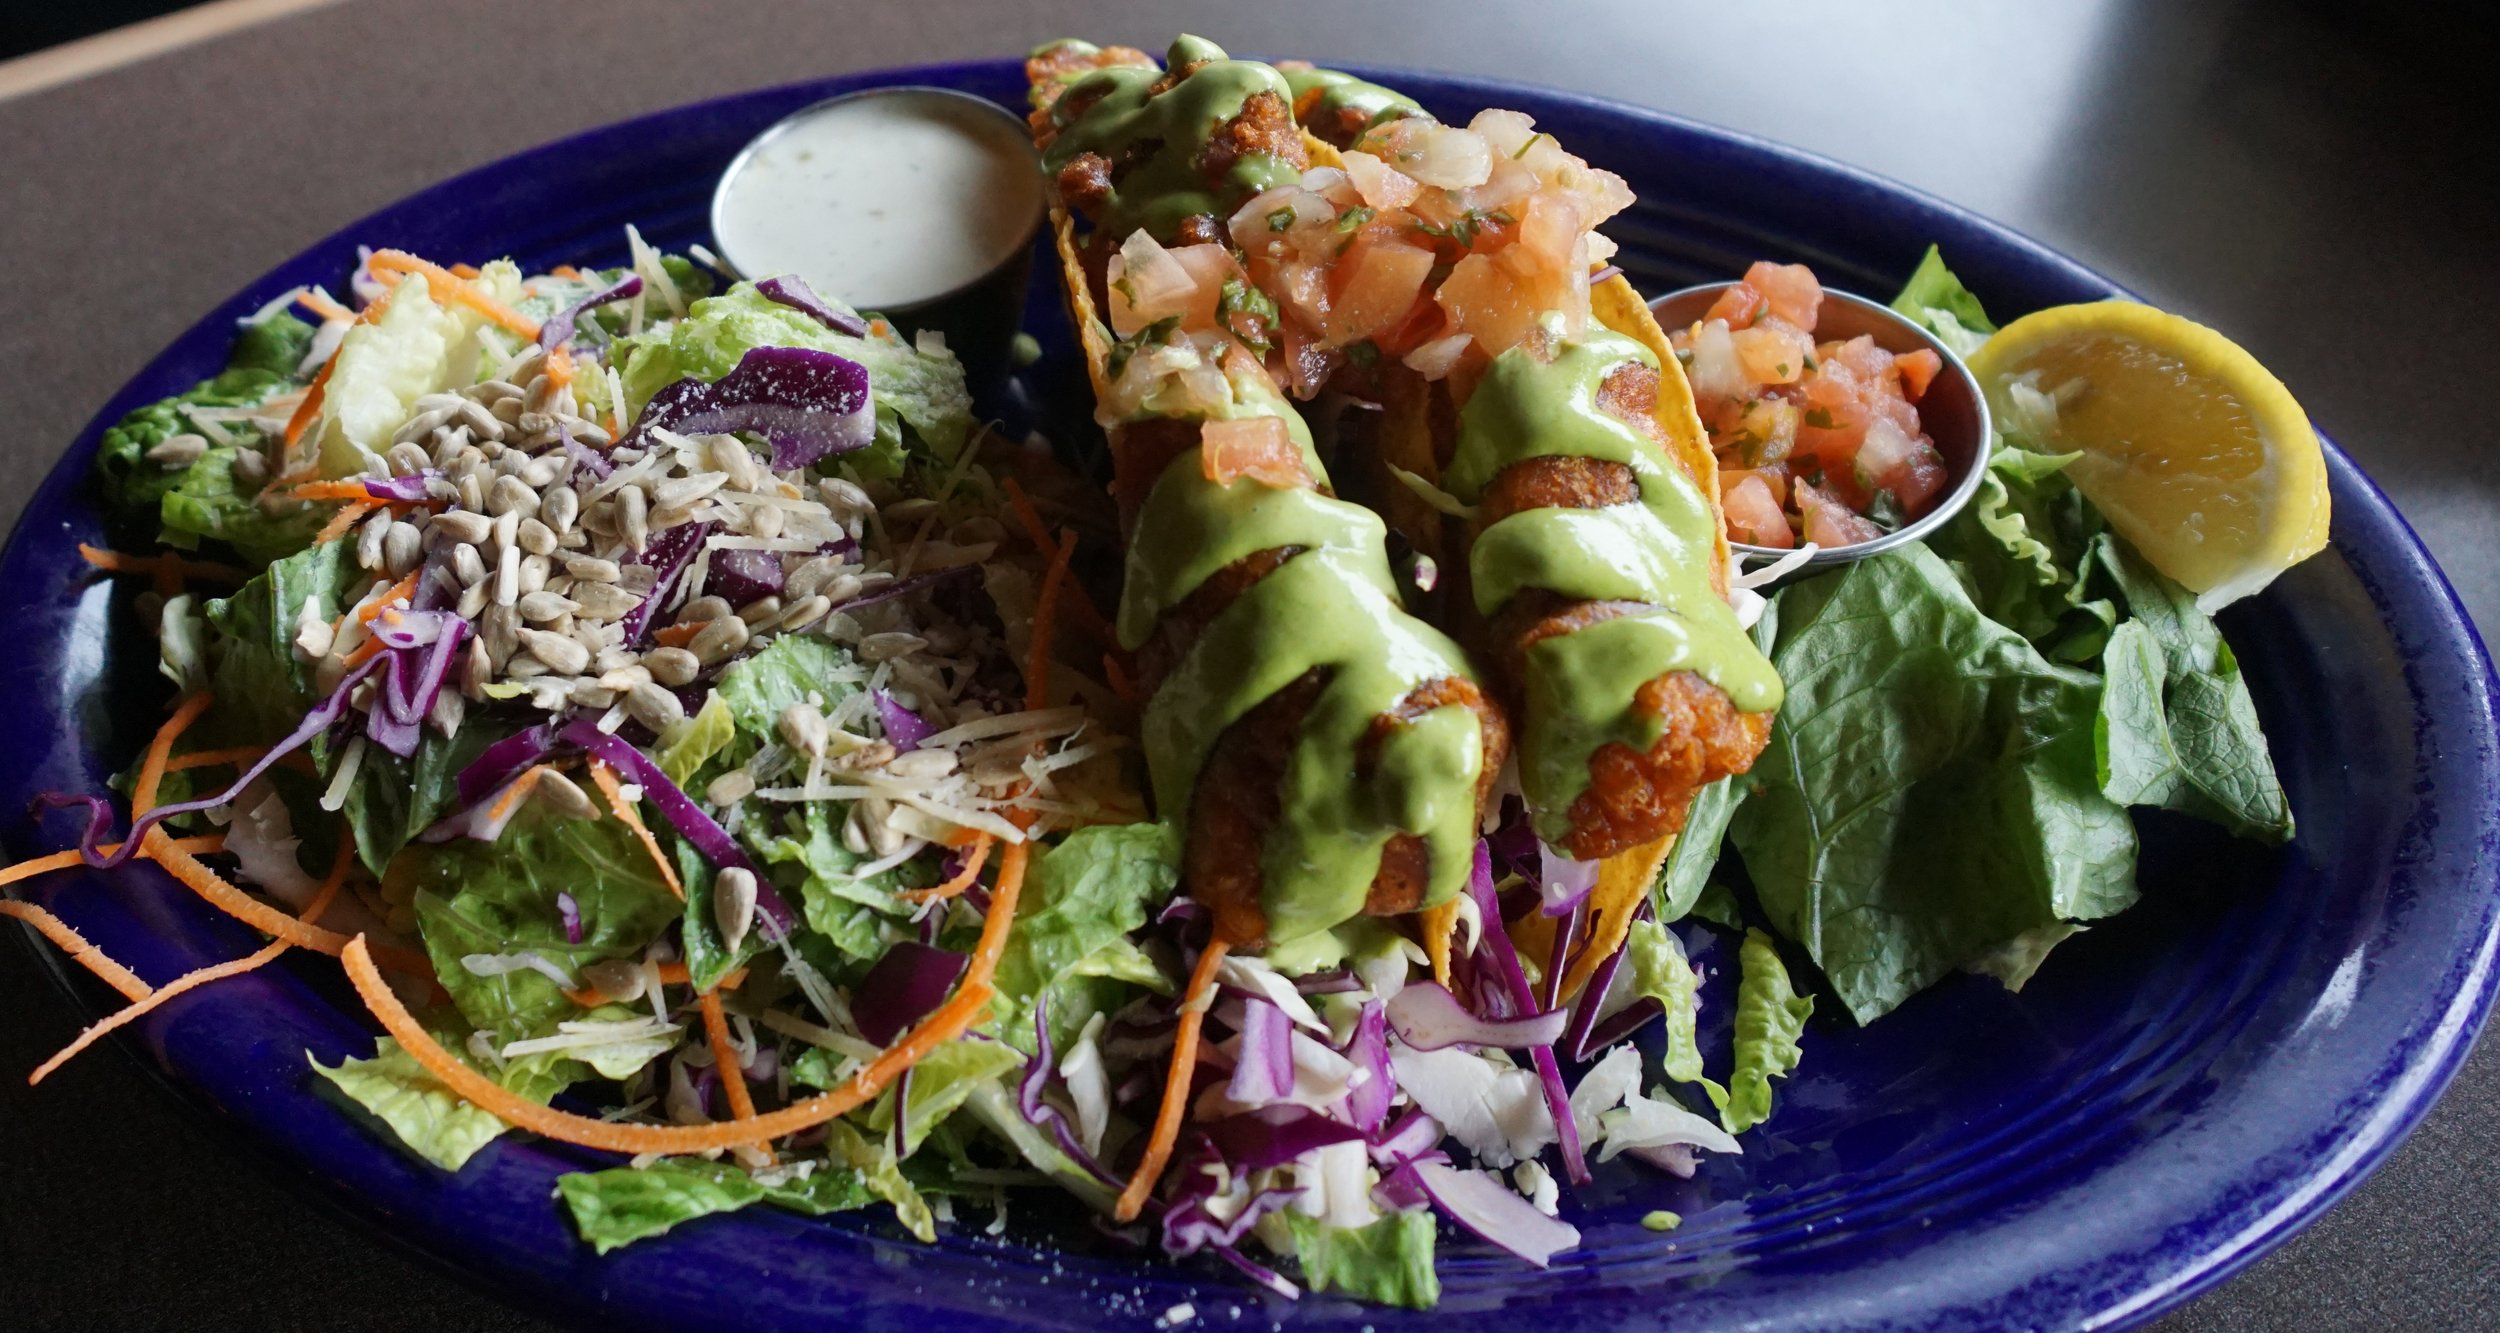 Baja Fish Tacos — a favorite menu item — feature beer-battered halibut drizzled with house-made cilantro-mayo sauce and fresh pico de gallo. Photo courtesy of Viki Eierdam.